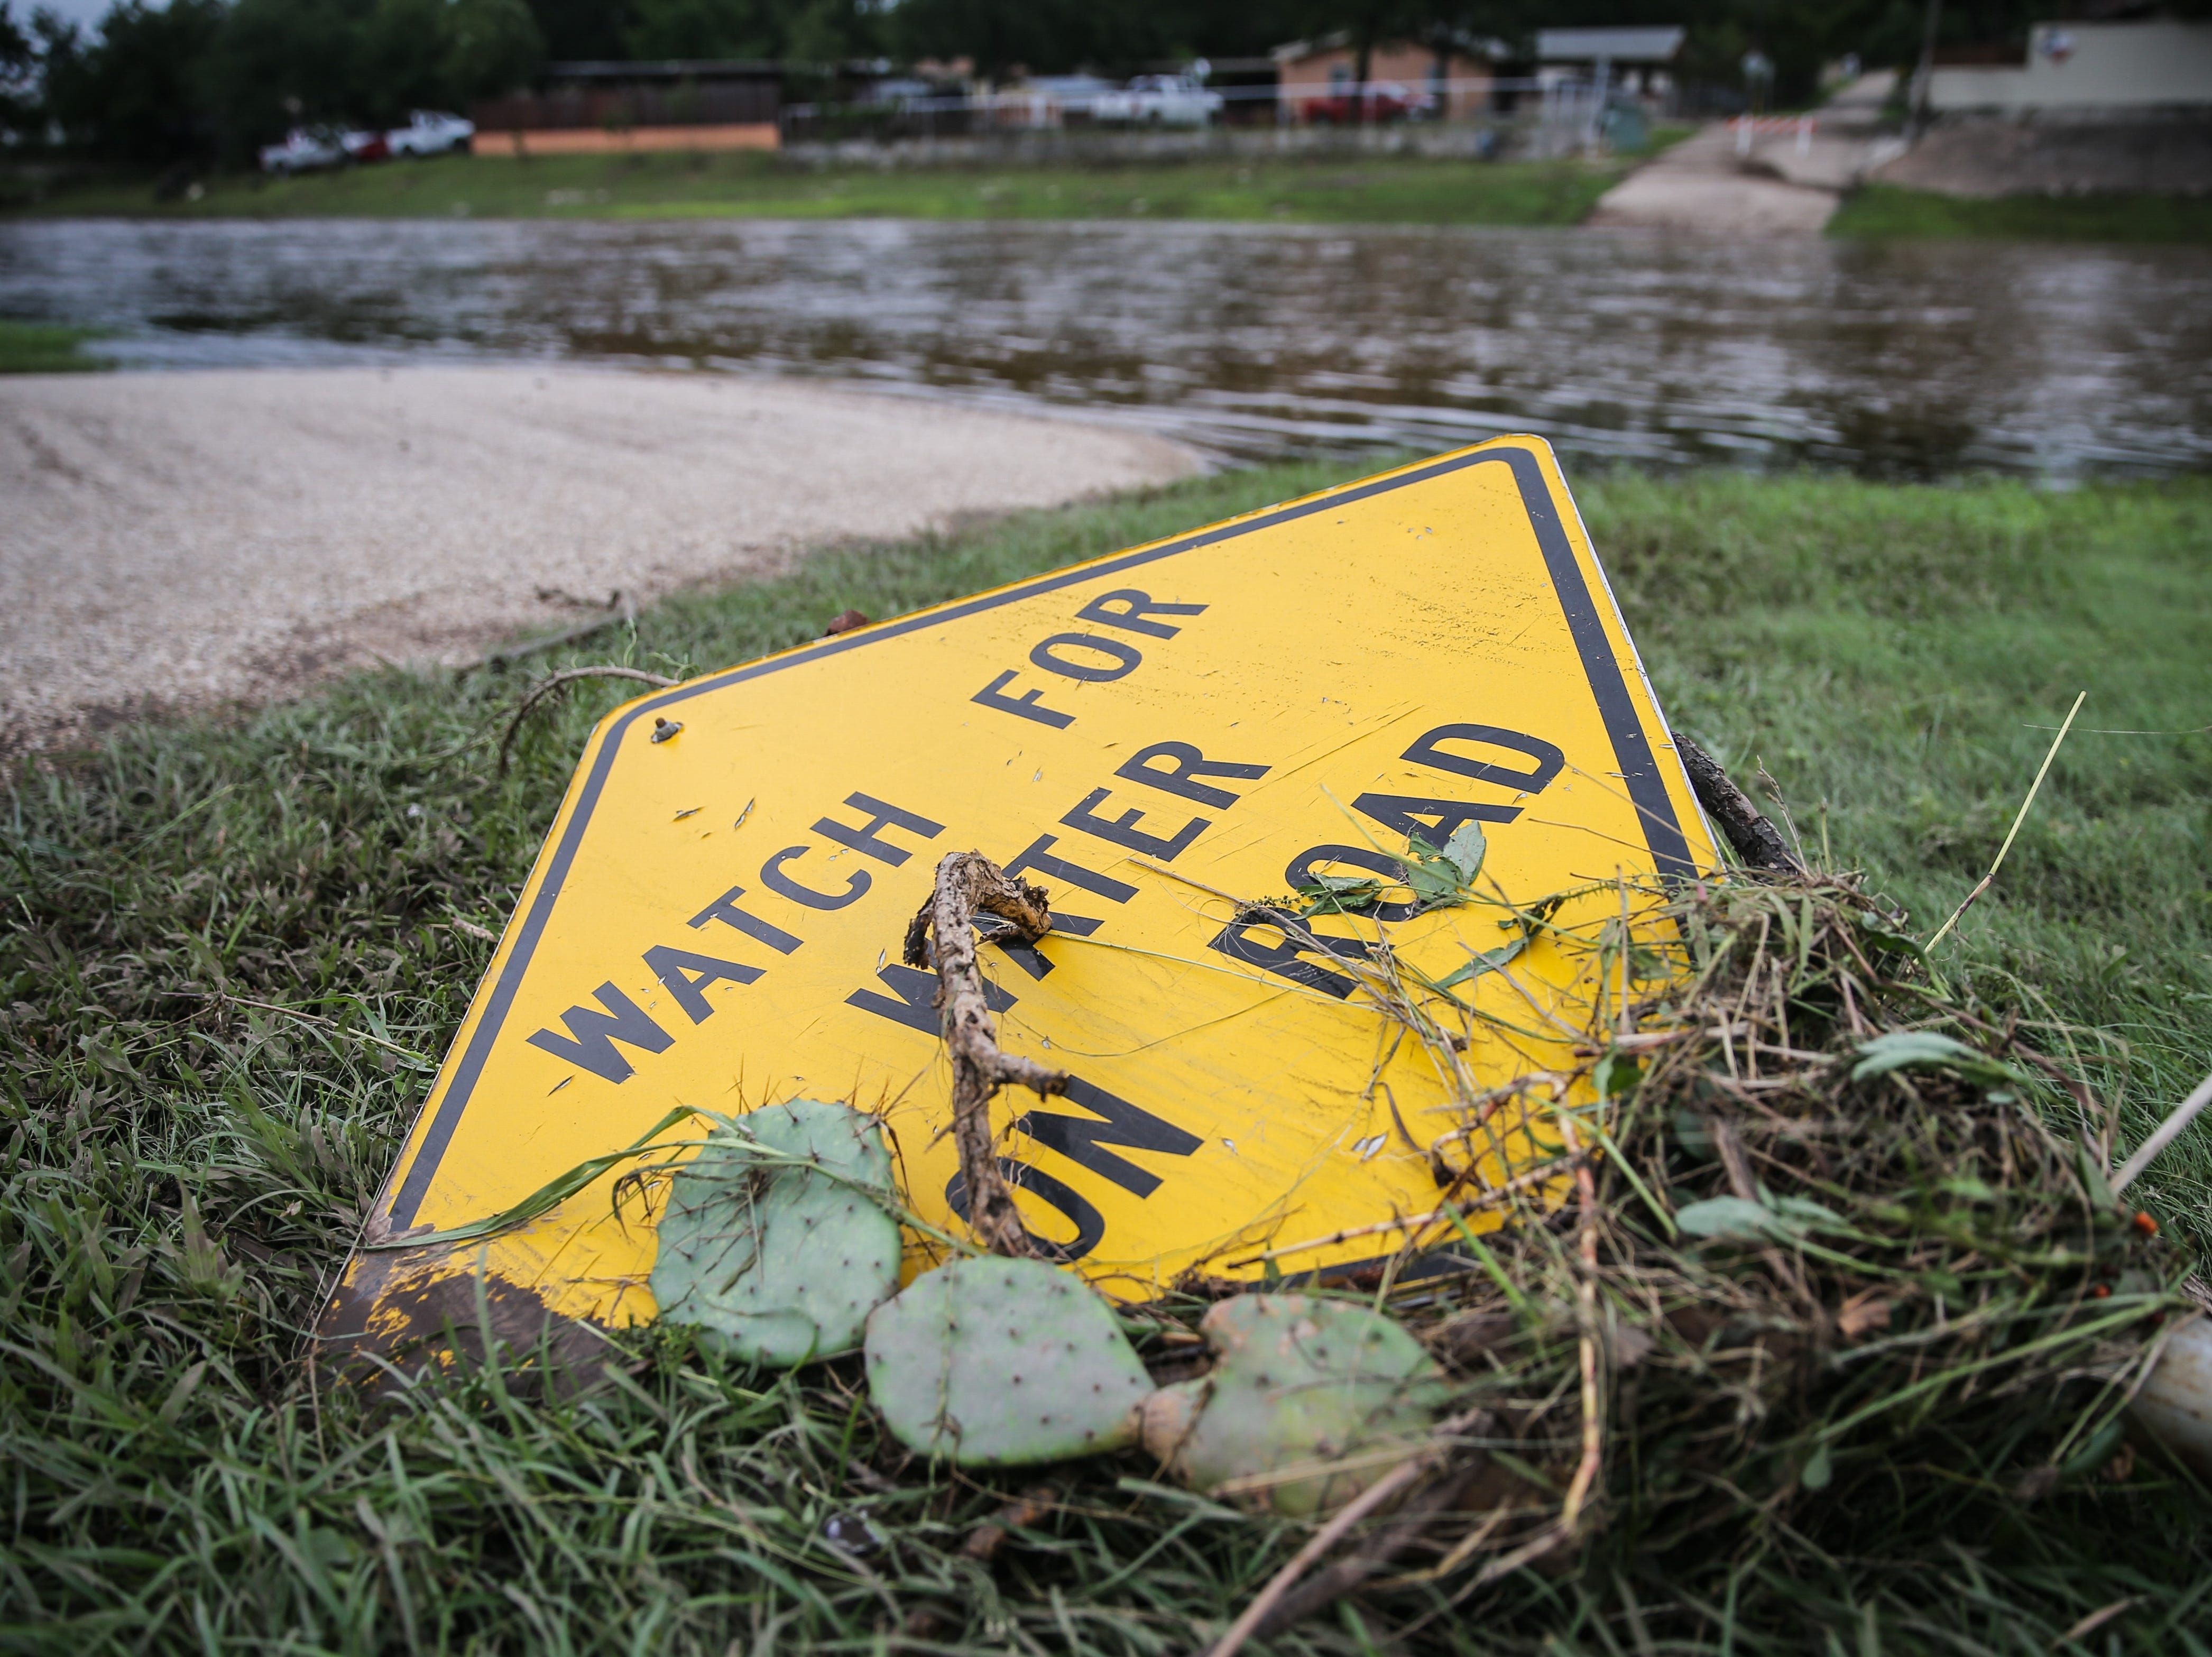 A street sign lays on the ground with debris Saturday, Sept. 22, 2018, after rain water flooded the draws Friday afternoon in Sonora.